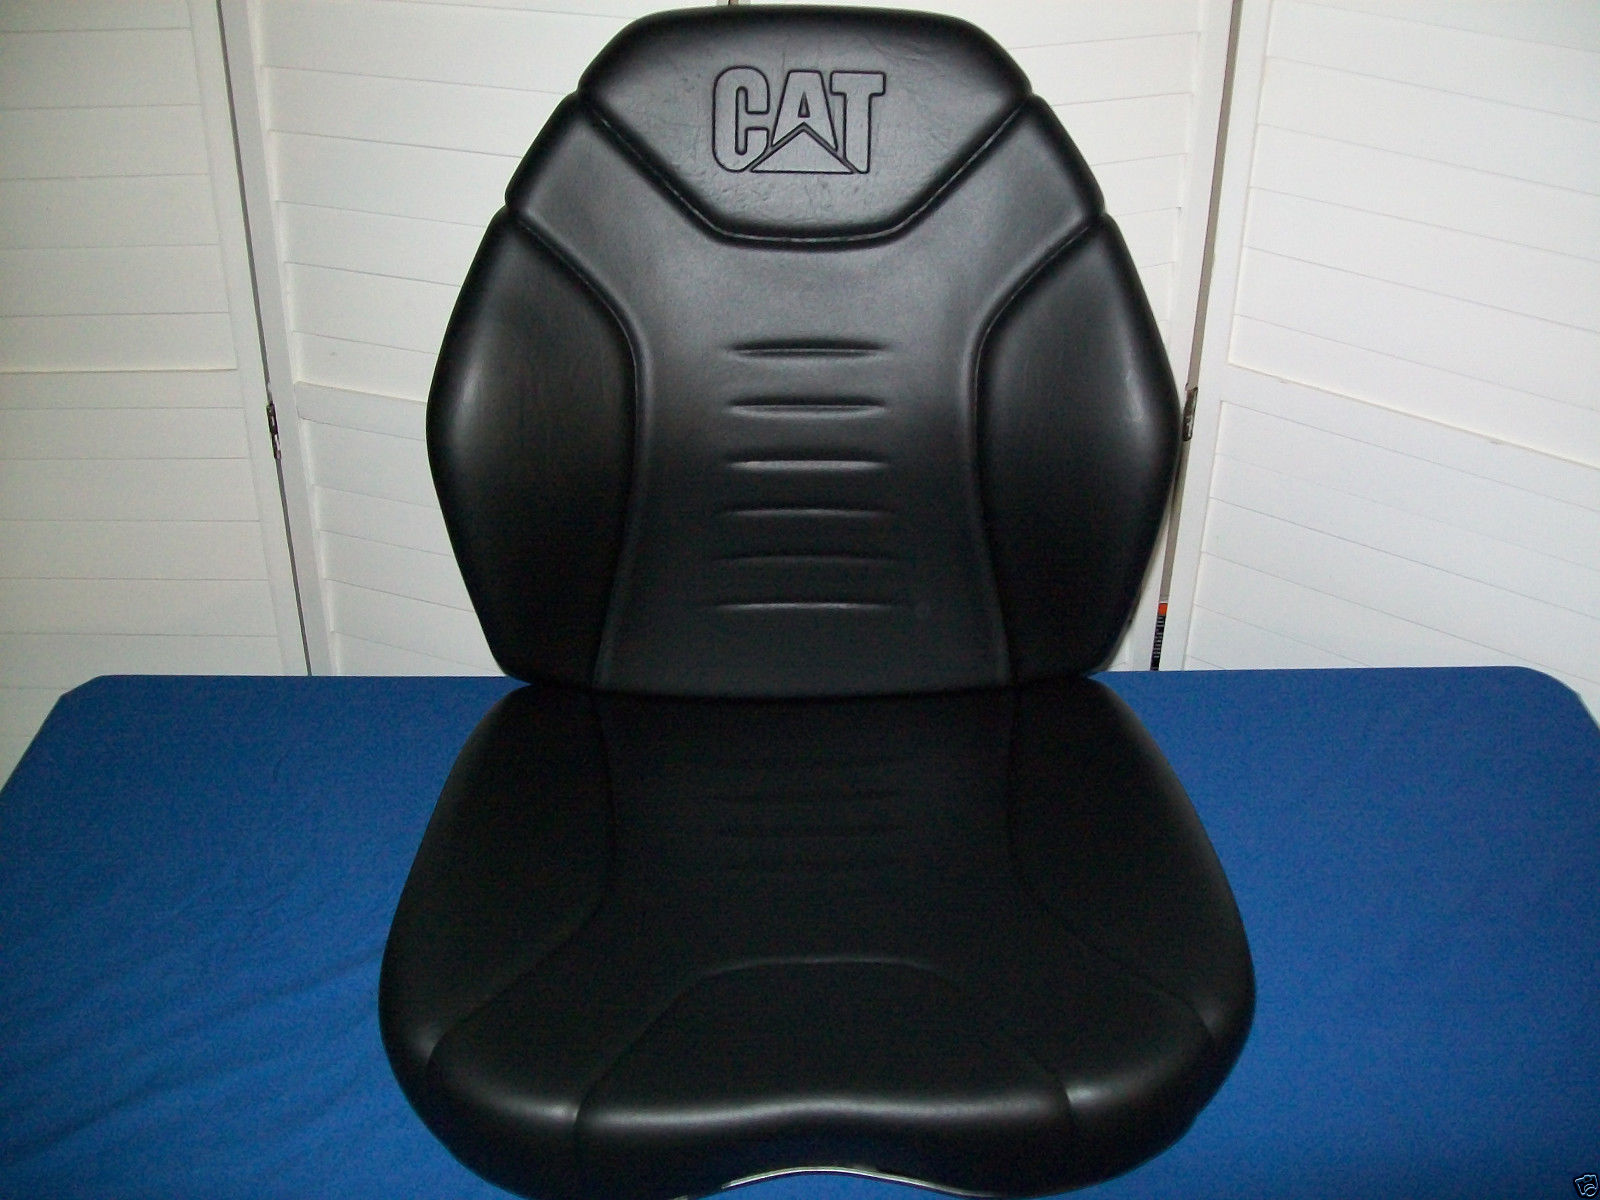 cat caterpillar skid steer suspension seat replacement cushion kit 216b,  226b, 246 #jt